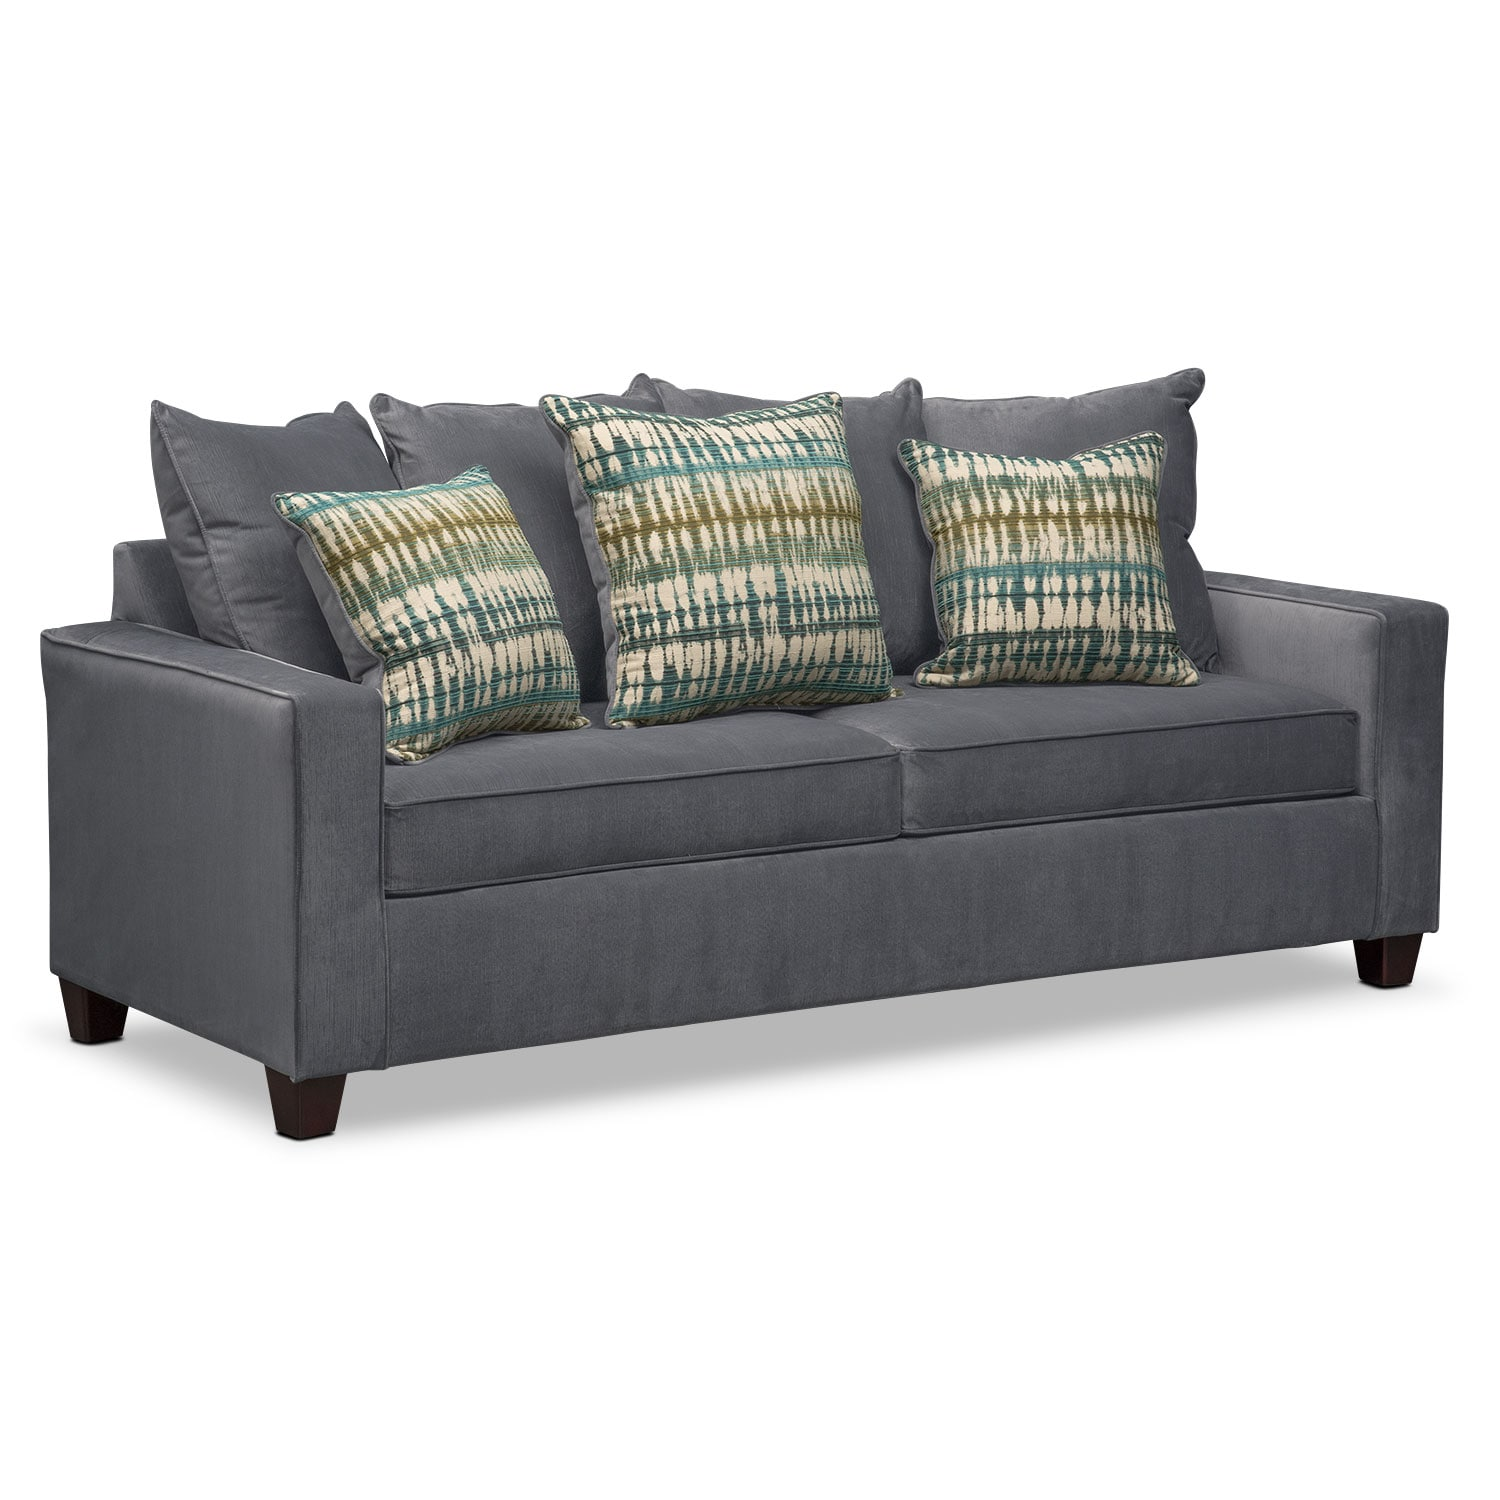 Bryden Queen Sleeper Sofa